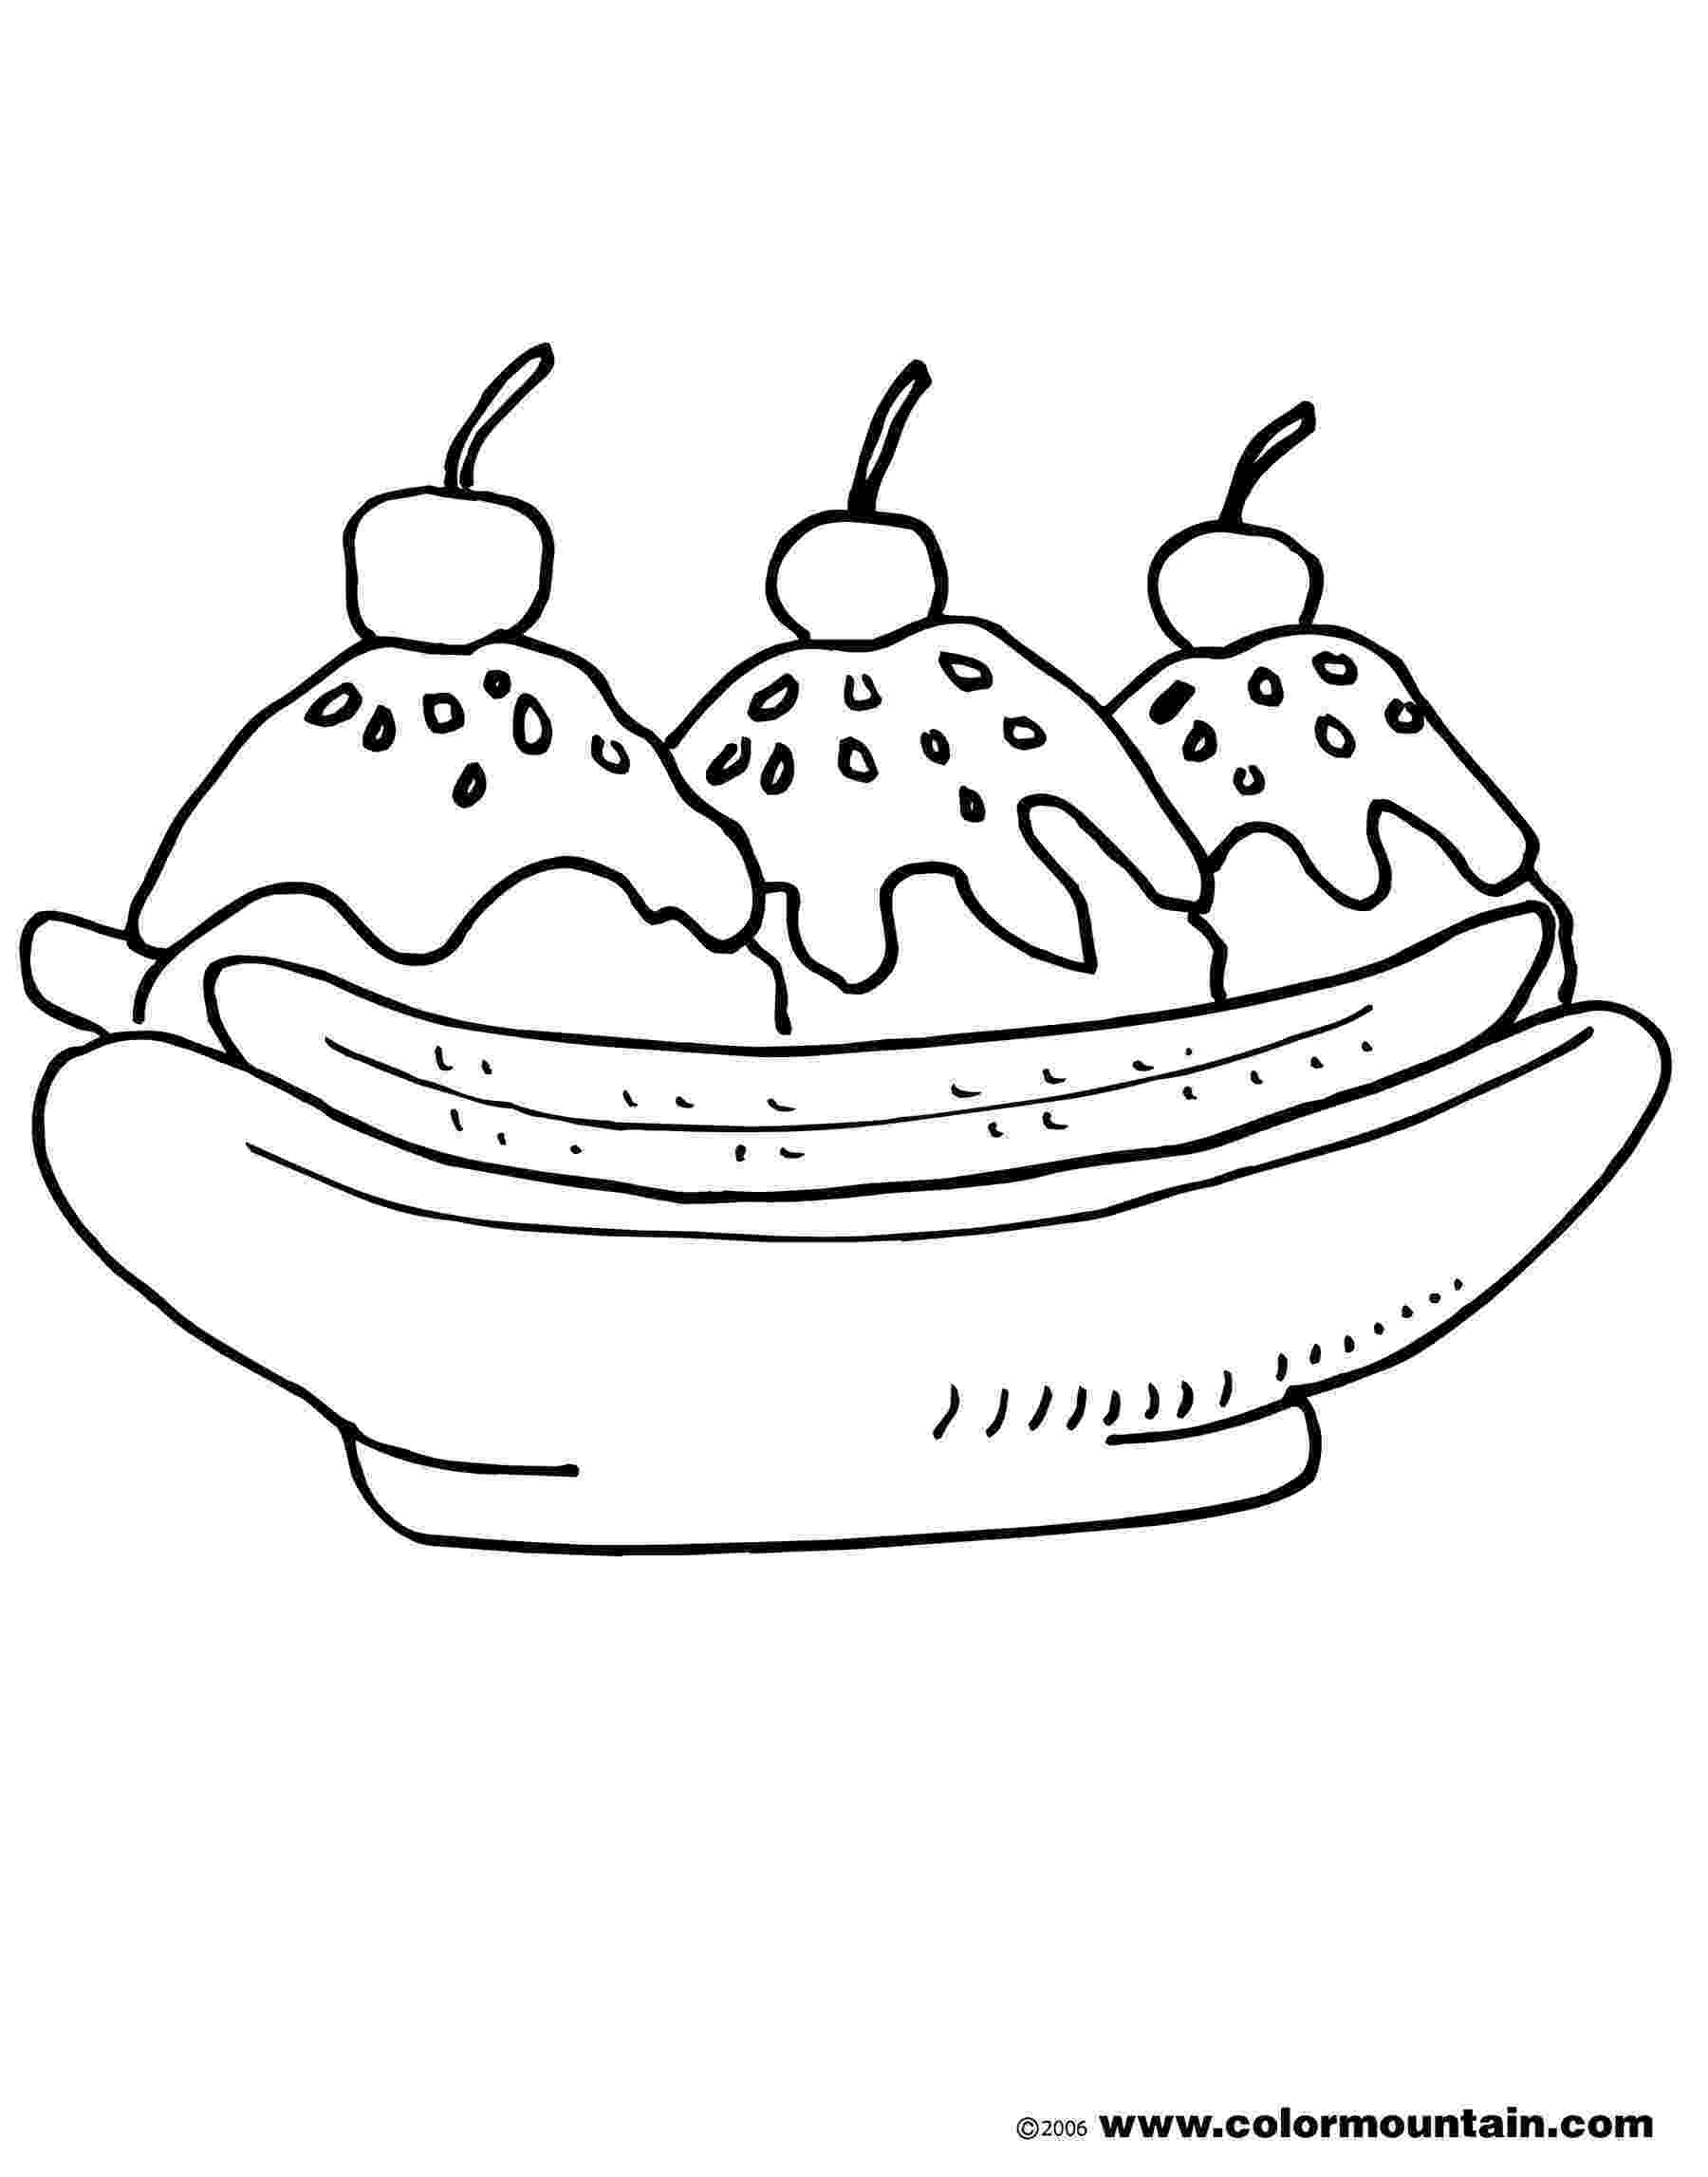 banana split coloring page banana split with chocolate sprinkles coloring pages split page coloring banana